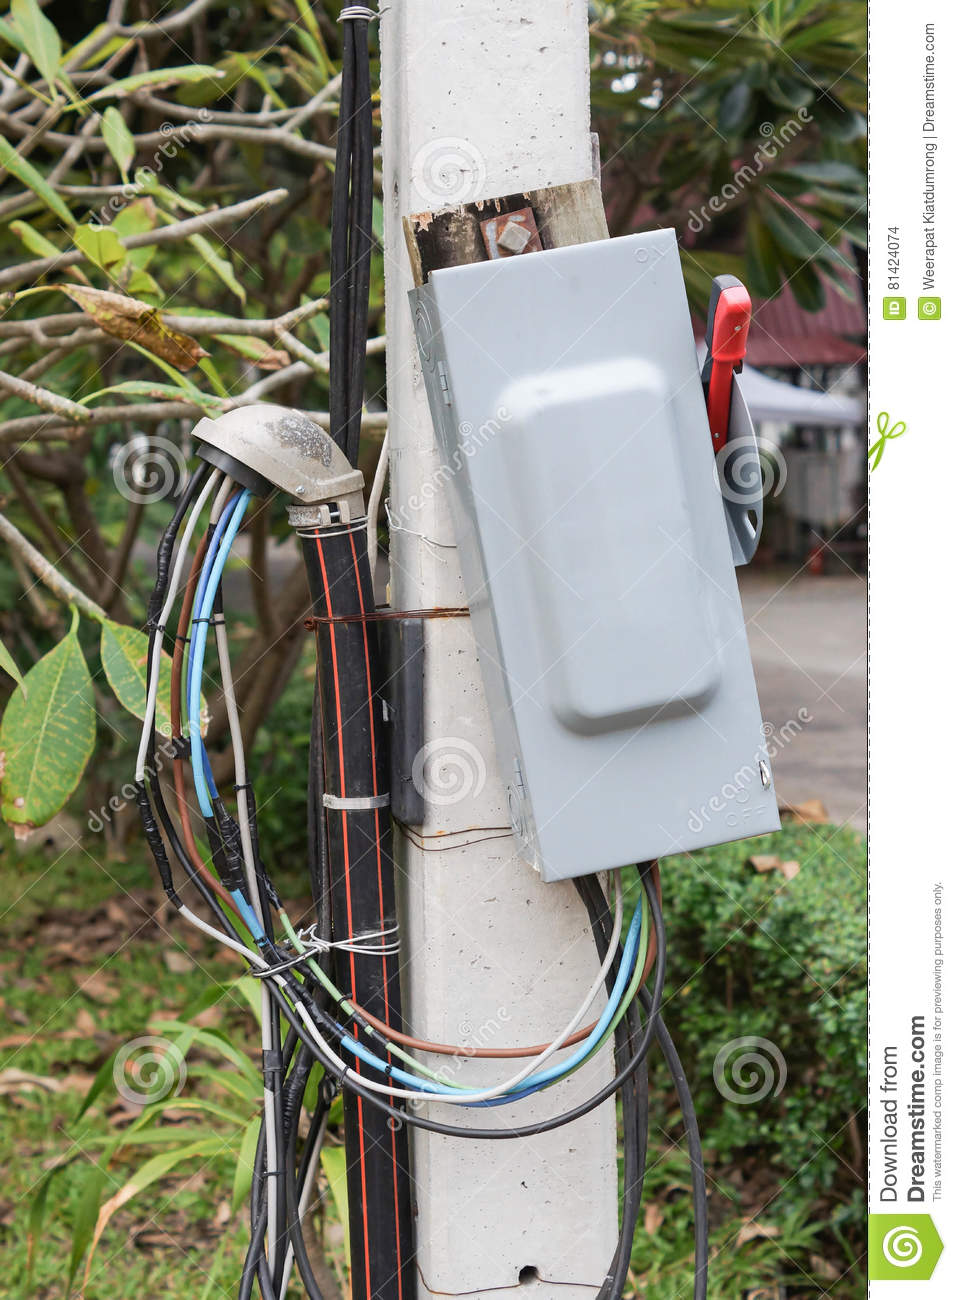 Marvelous Electricity Breaker Box Stock Photo Image Of Outside 81424074 Wiring Digital Resources Remcakbiperorg